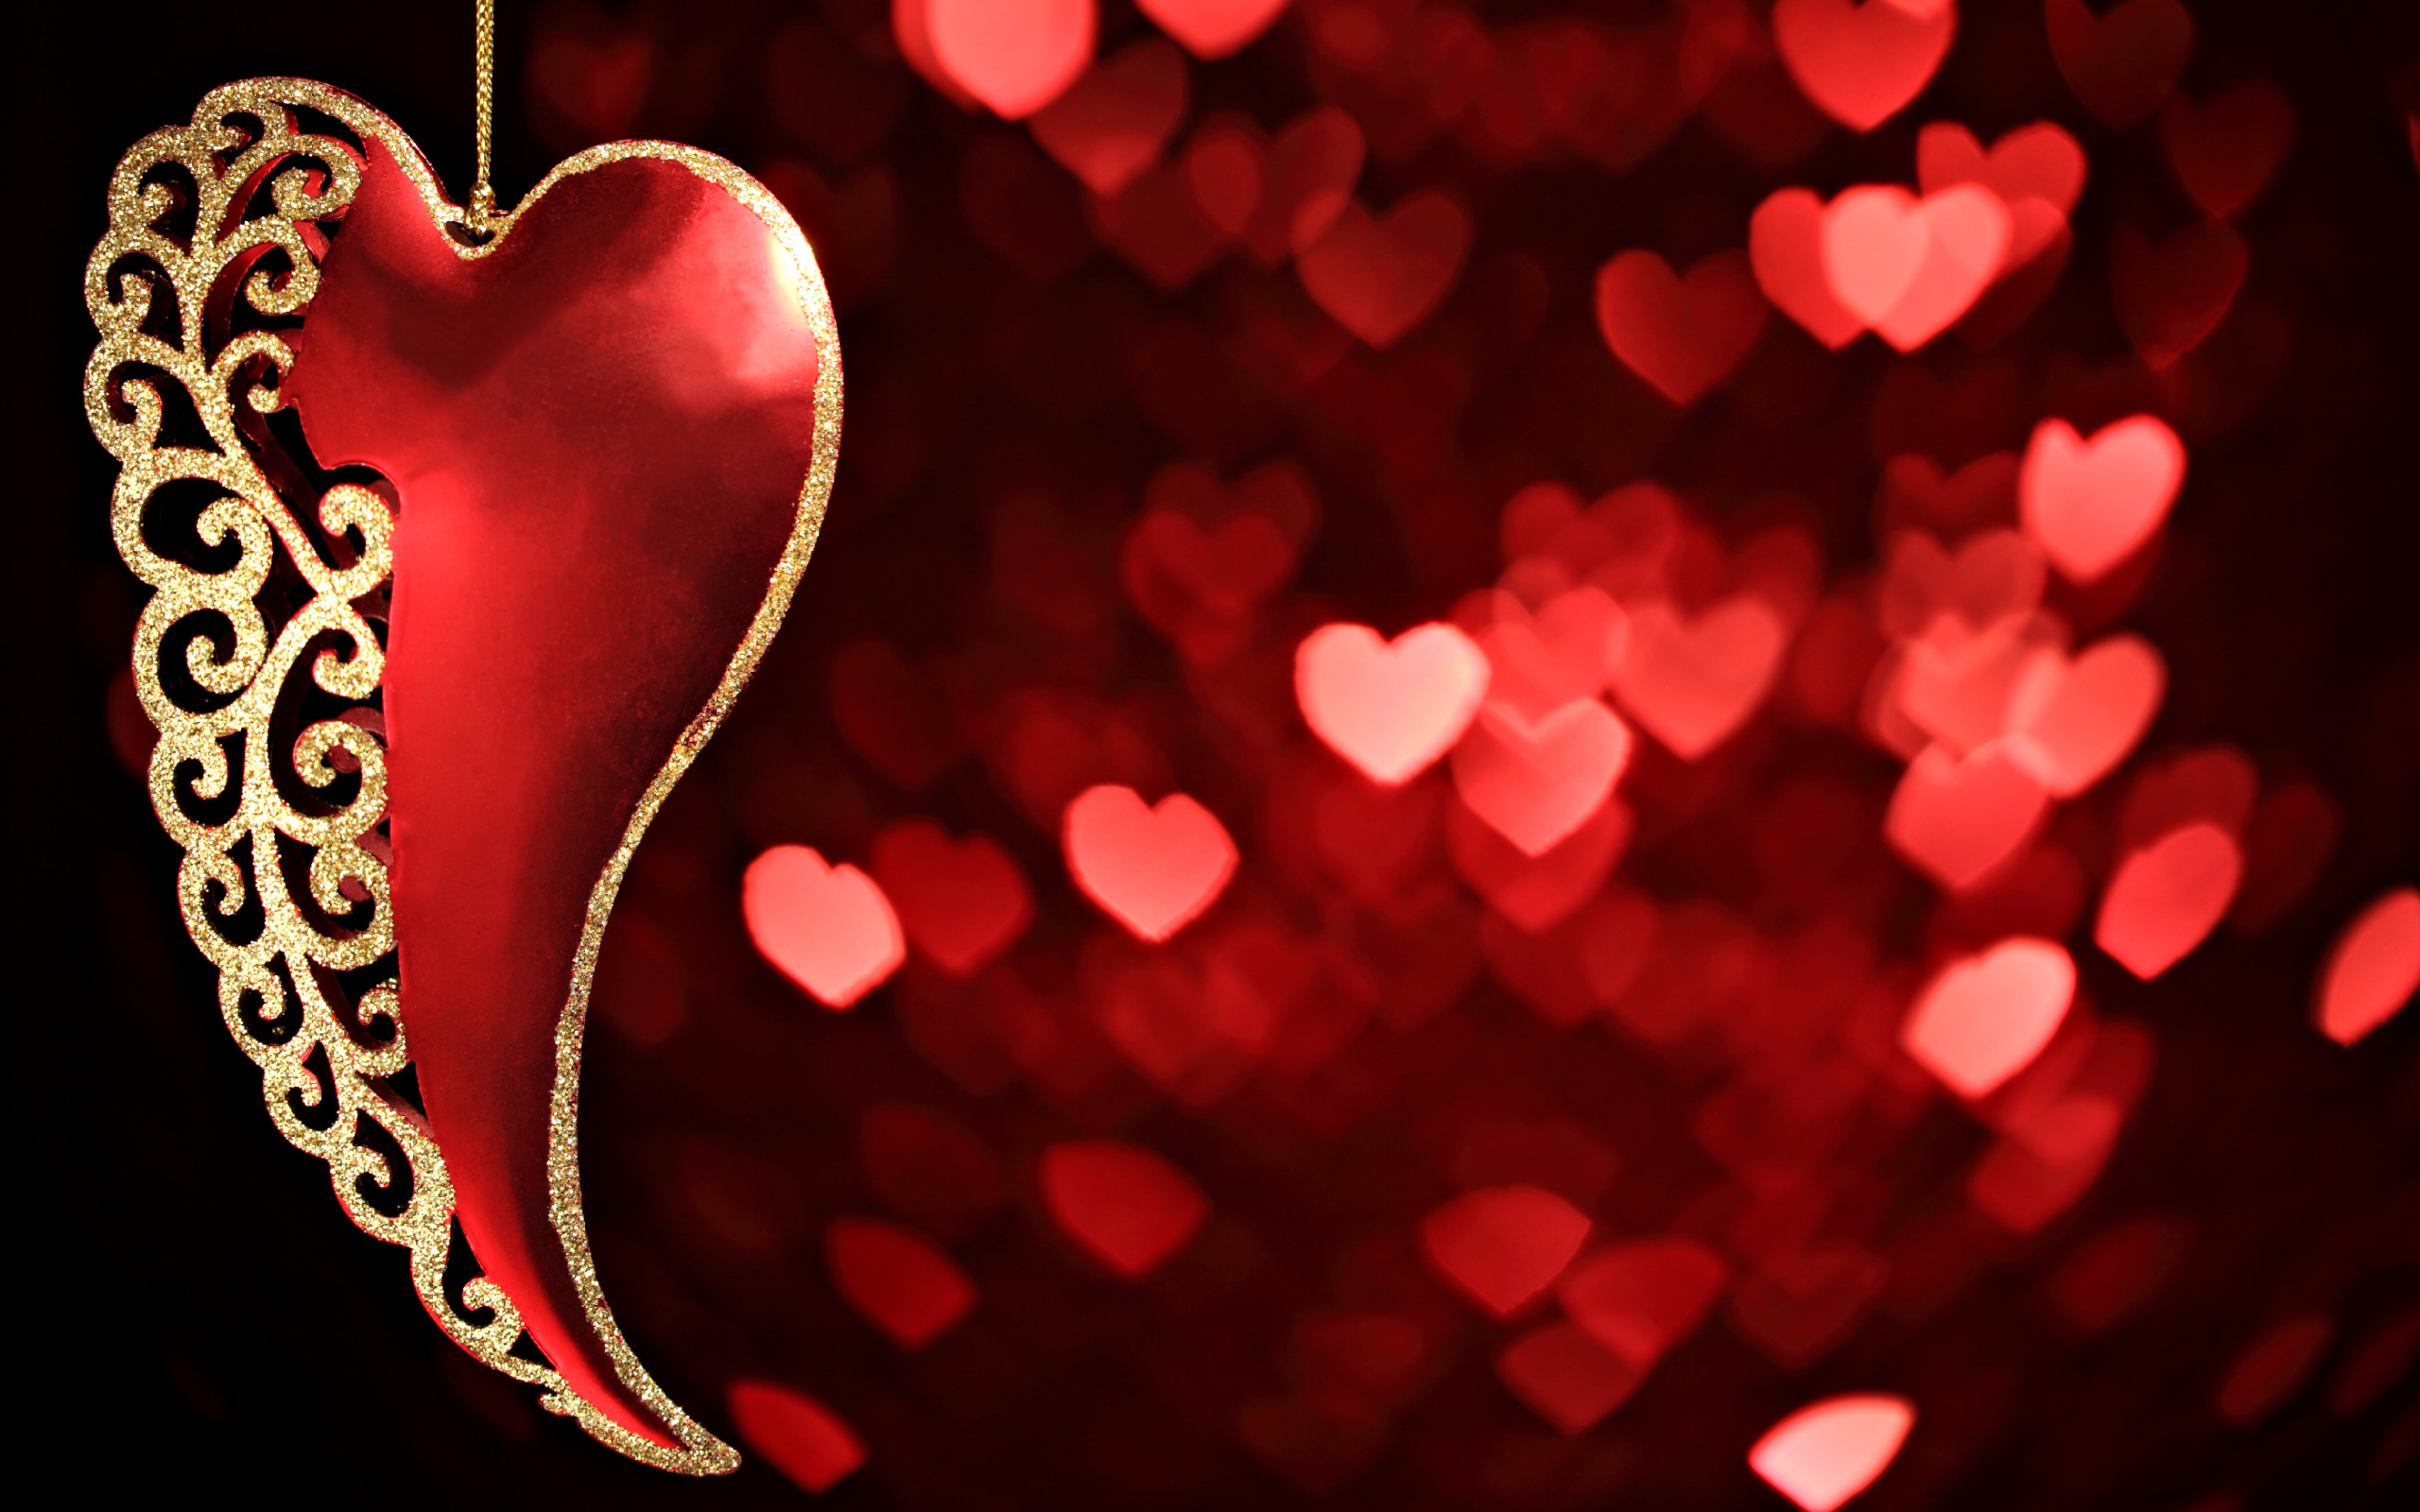 Valentine Day Love Heart Wallpapers – HD Wallpapers 95605